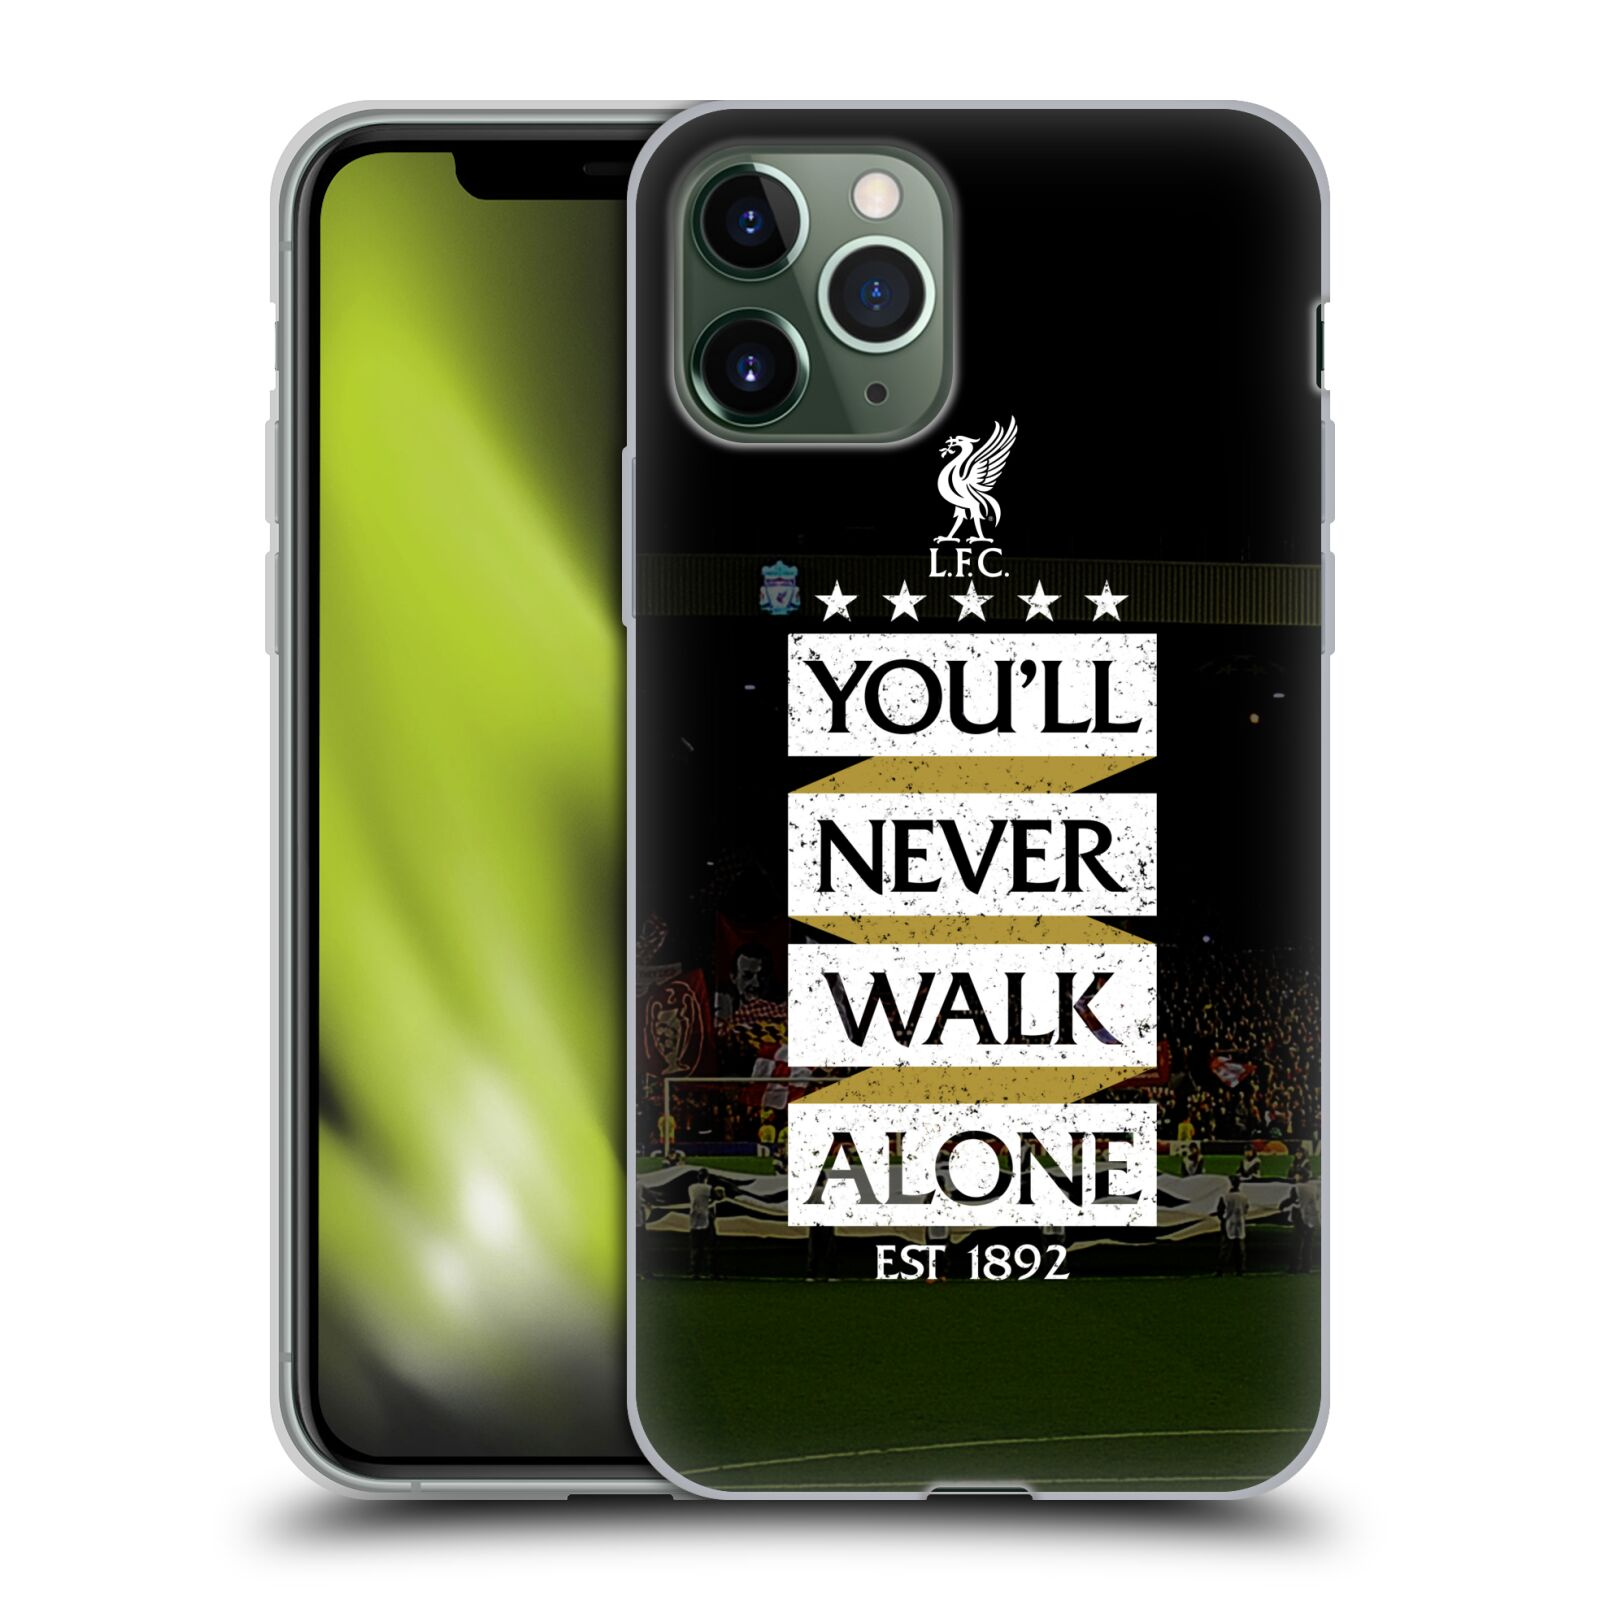 iphone 8 kryt mramor | Silikonové pouzdro na mobil Apple iPhone 11 Pro - Head Case - LFC You'll Never Walk Alone